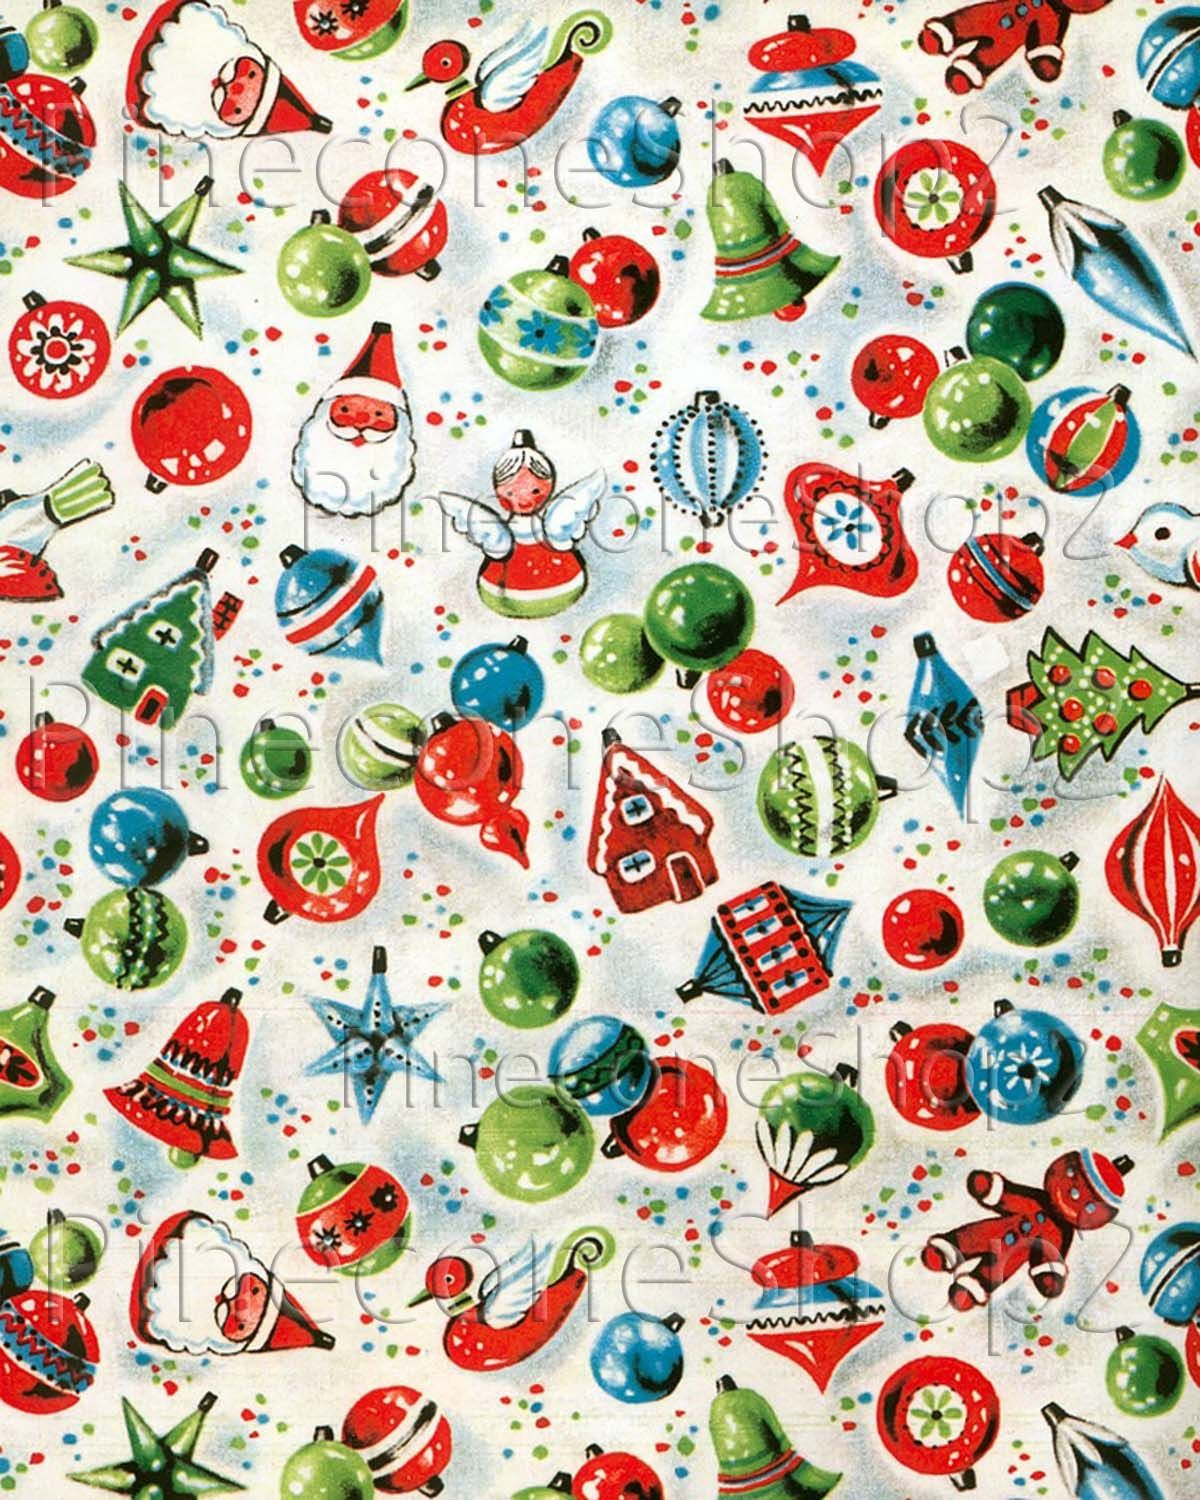 Vintage Christmas Wrapping Paper 8x10 inch Instant